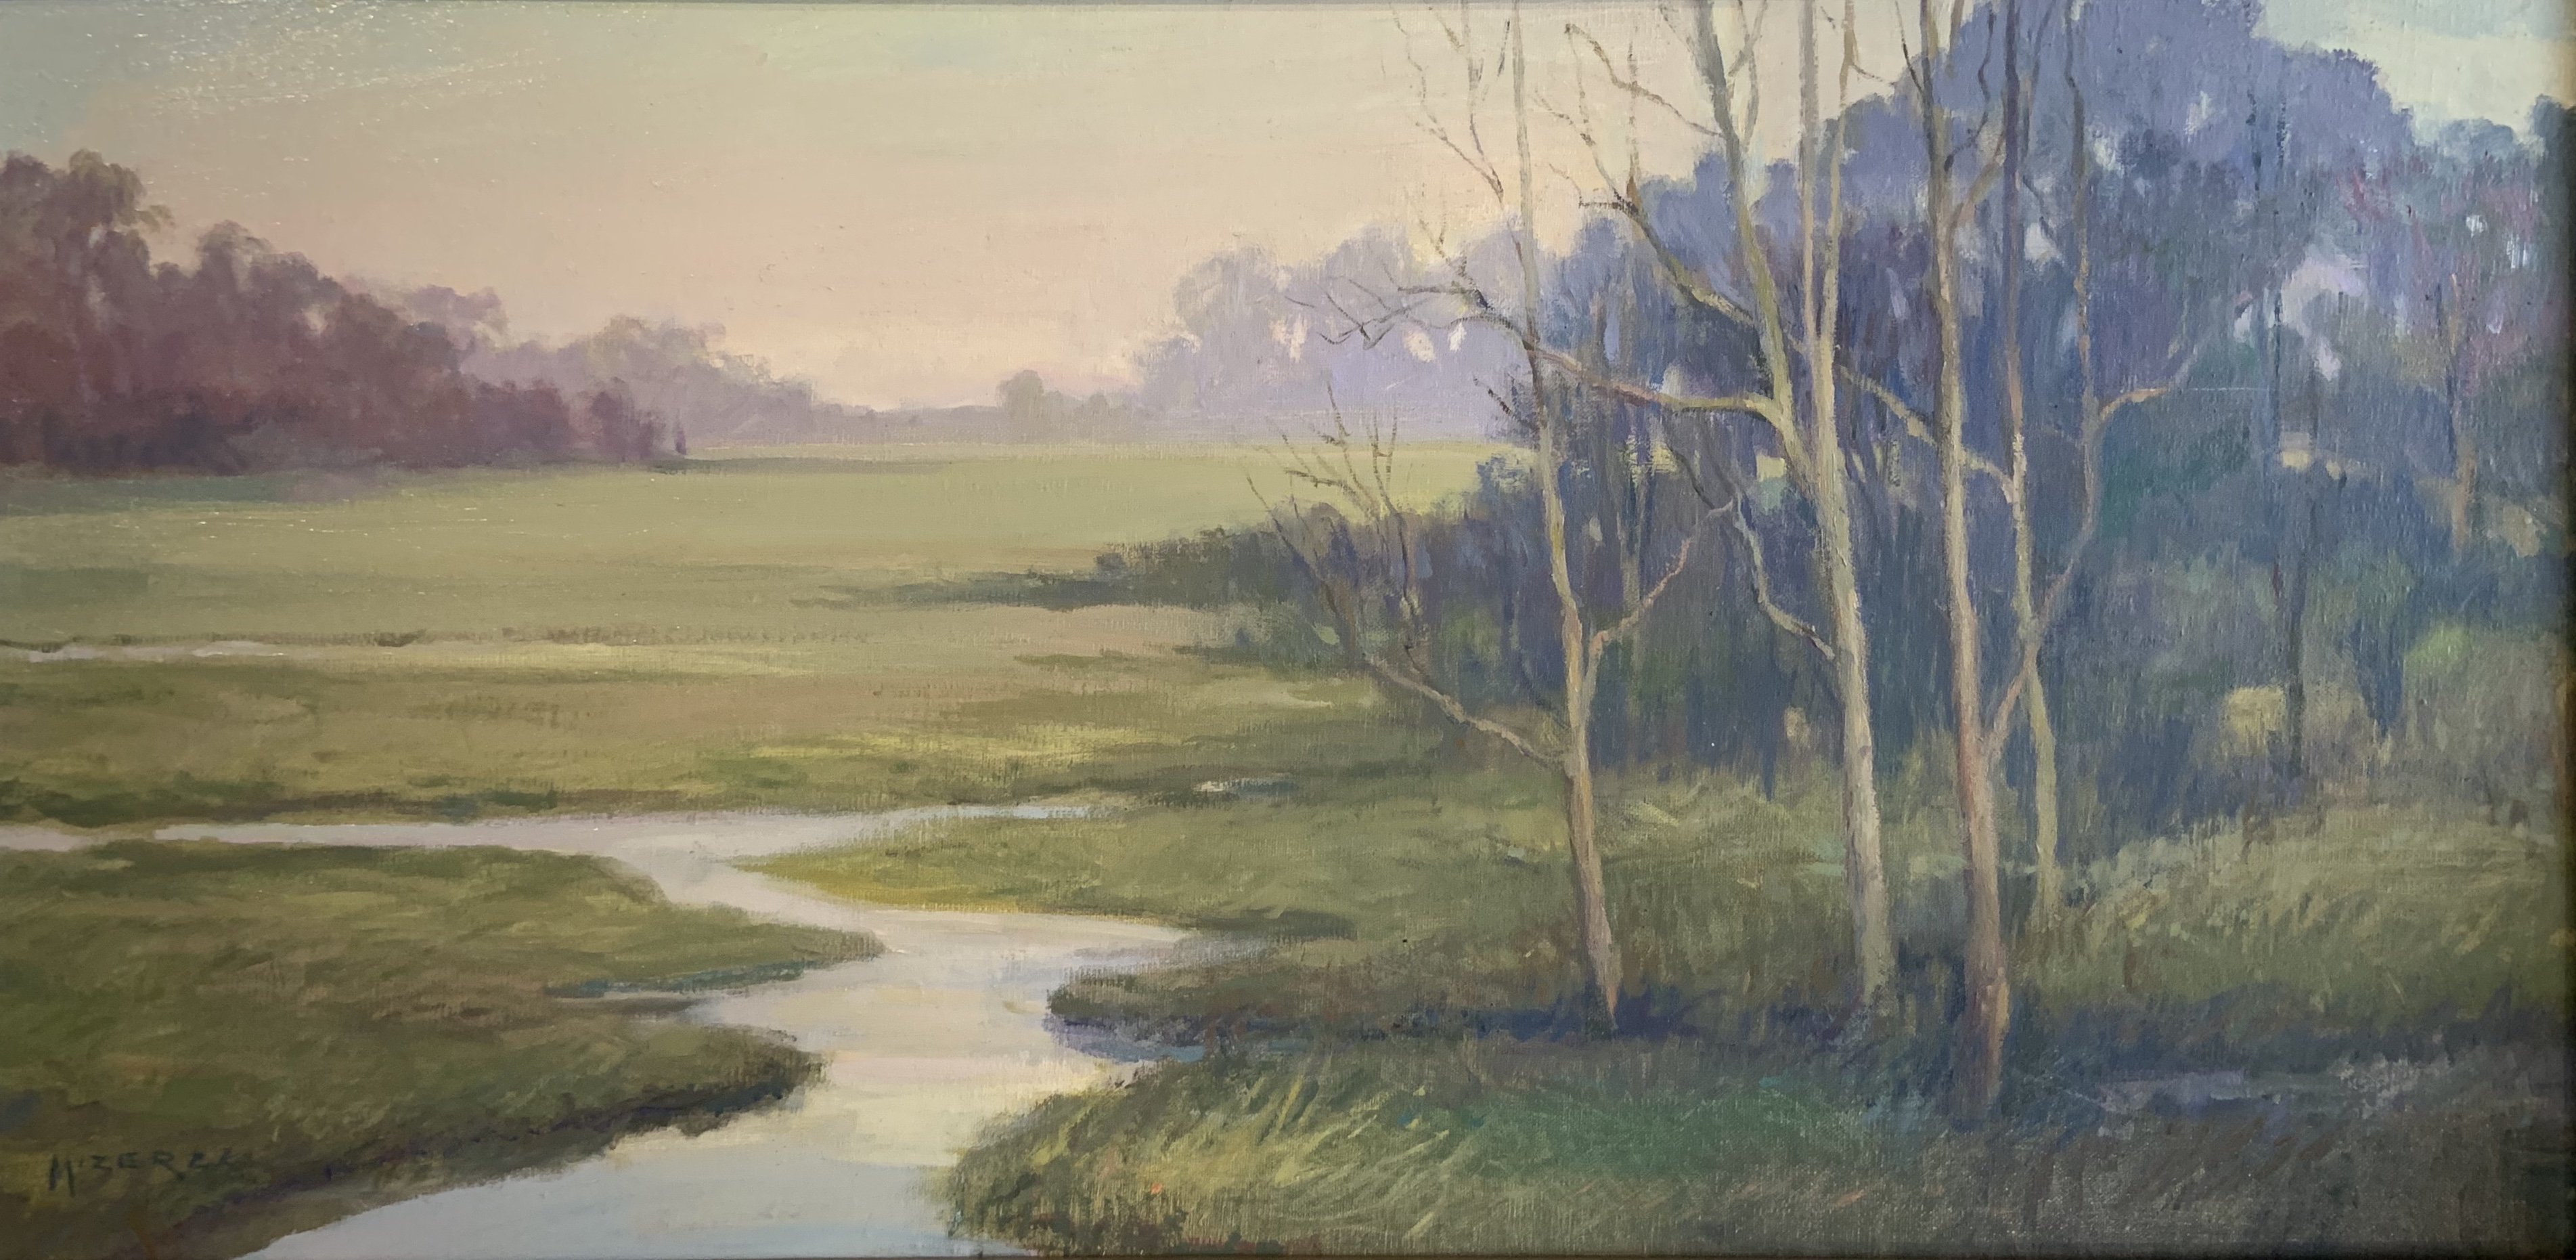 Marsh Mist-Mizerek, oil 12x24 $2700 sold